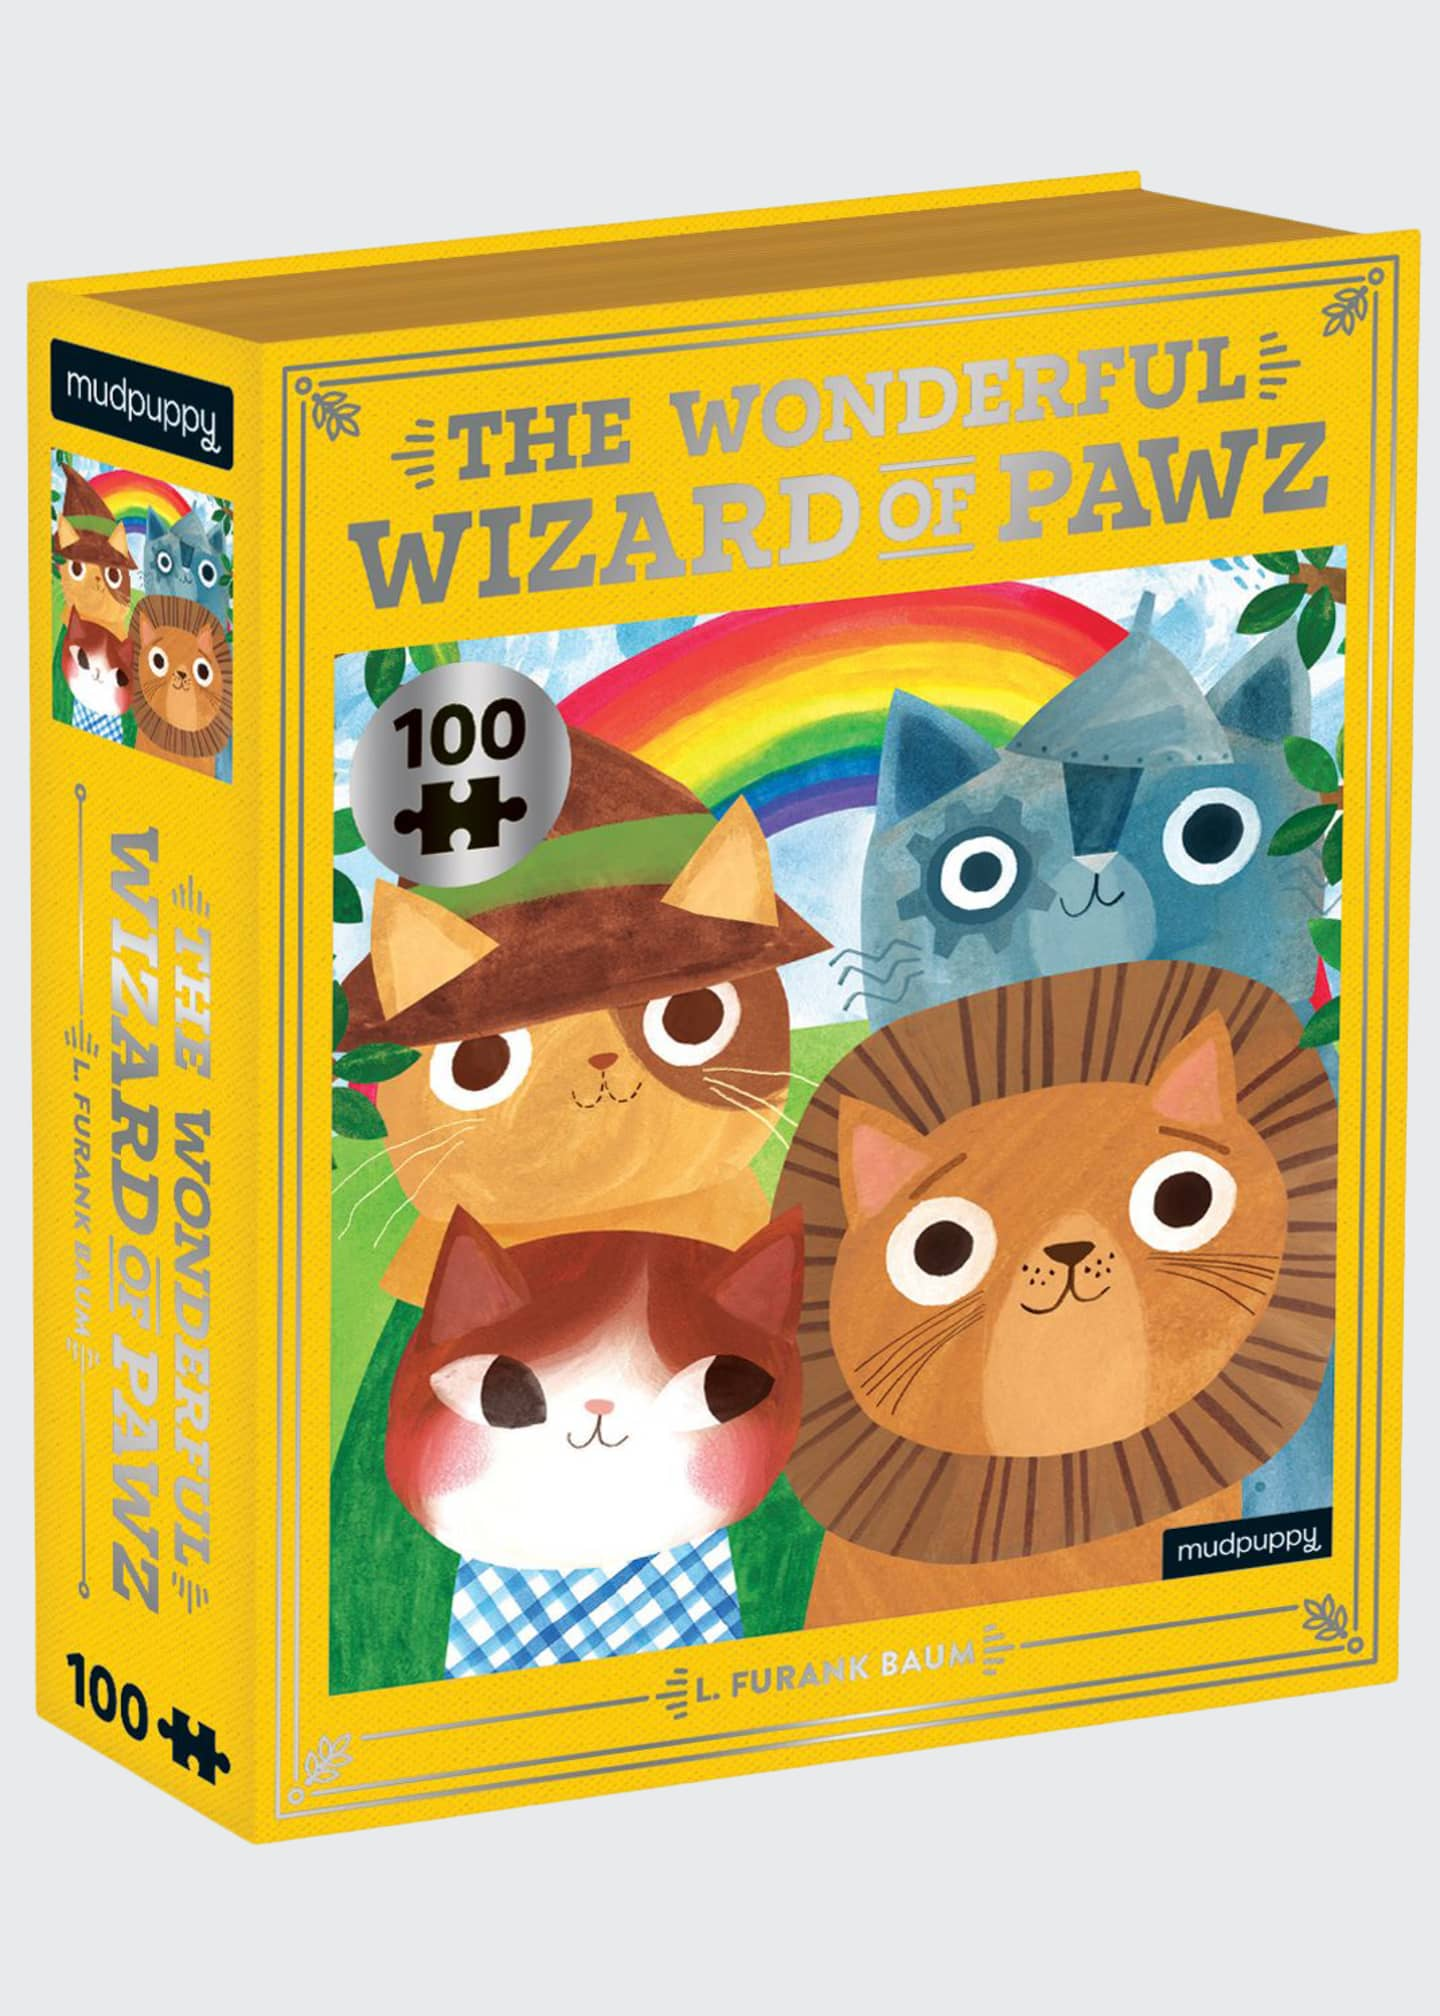 Image 1 of 1: The Wonderful Wizard of Pawz Puzzle